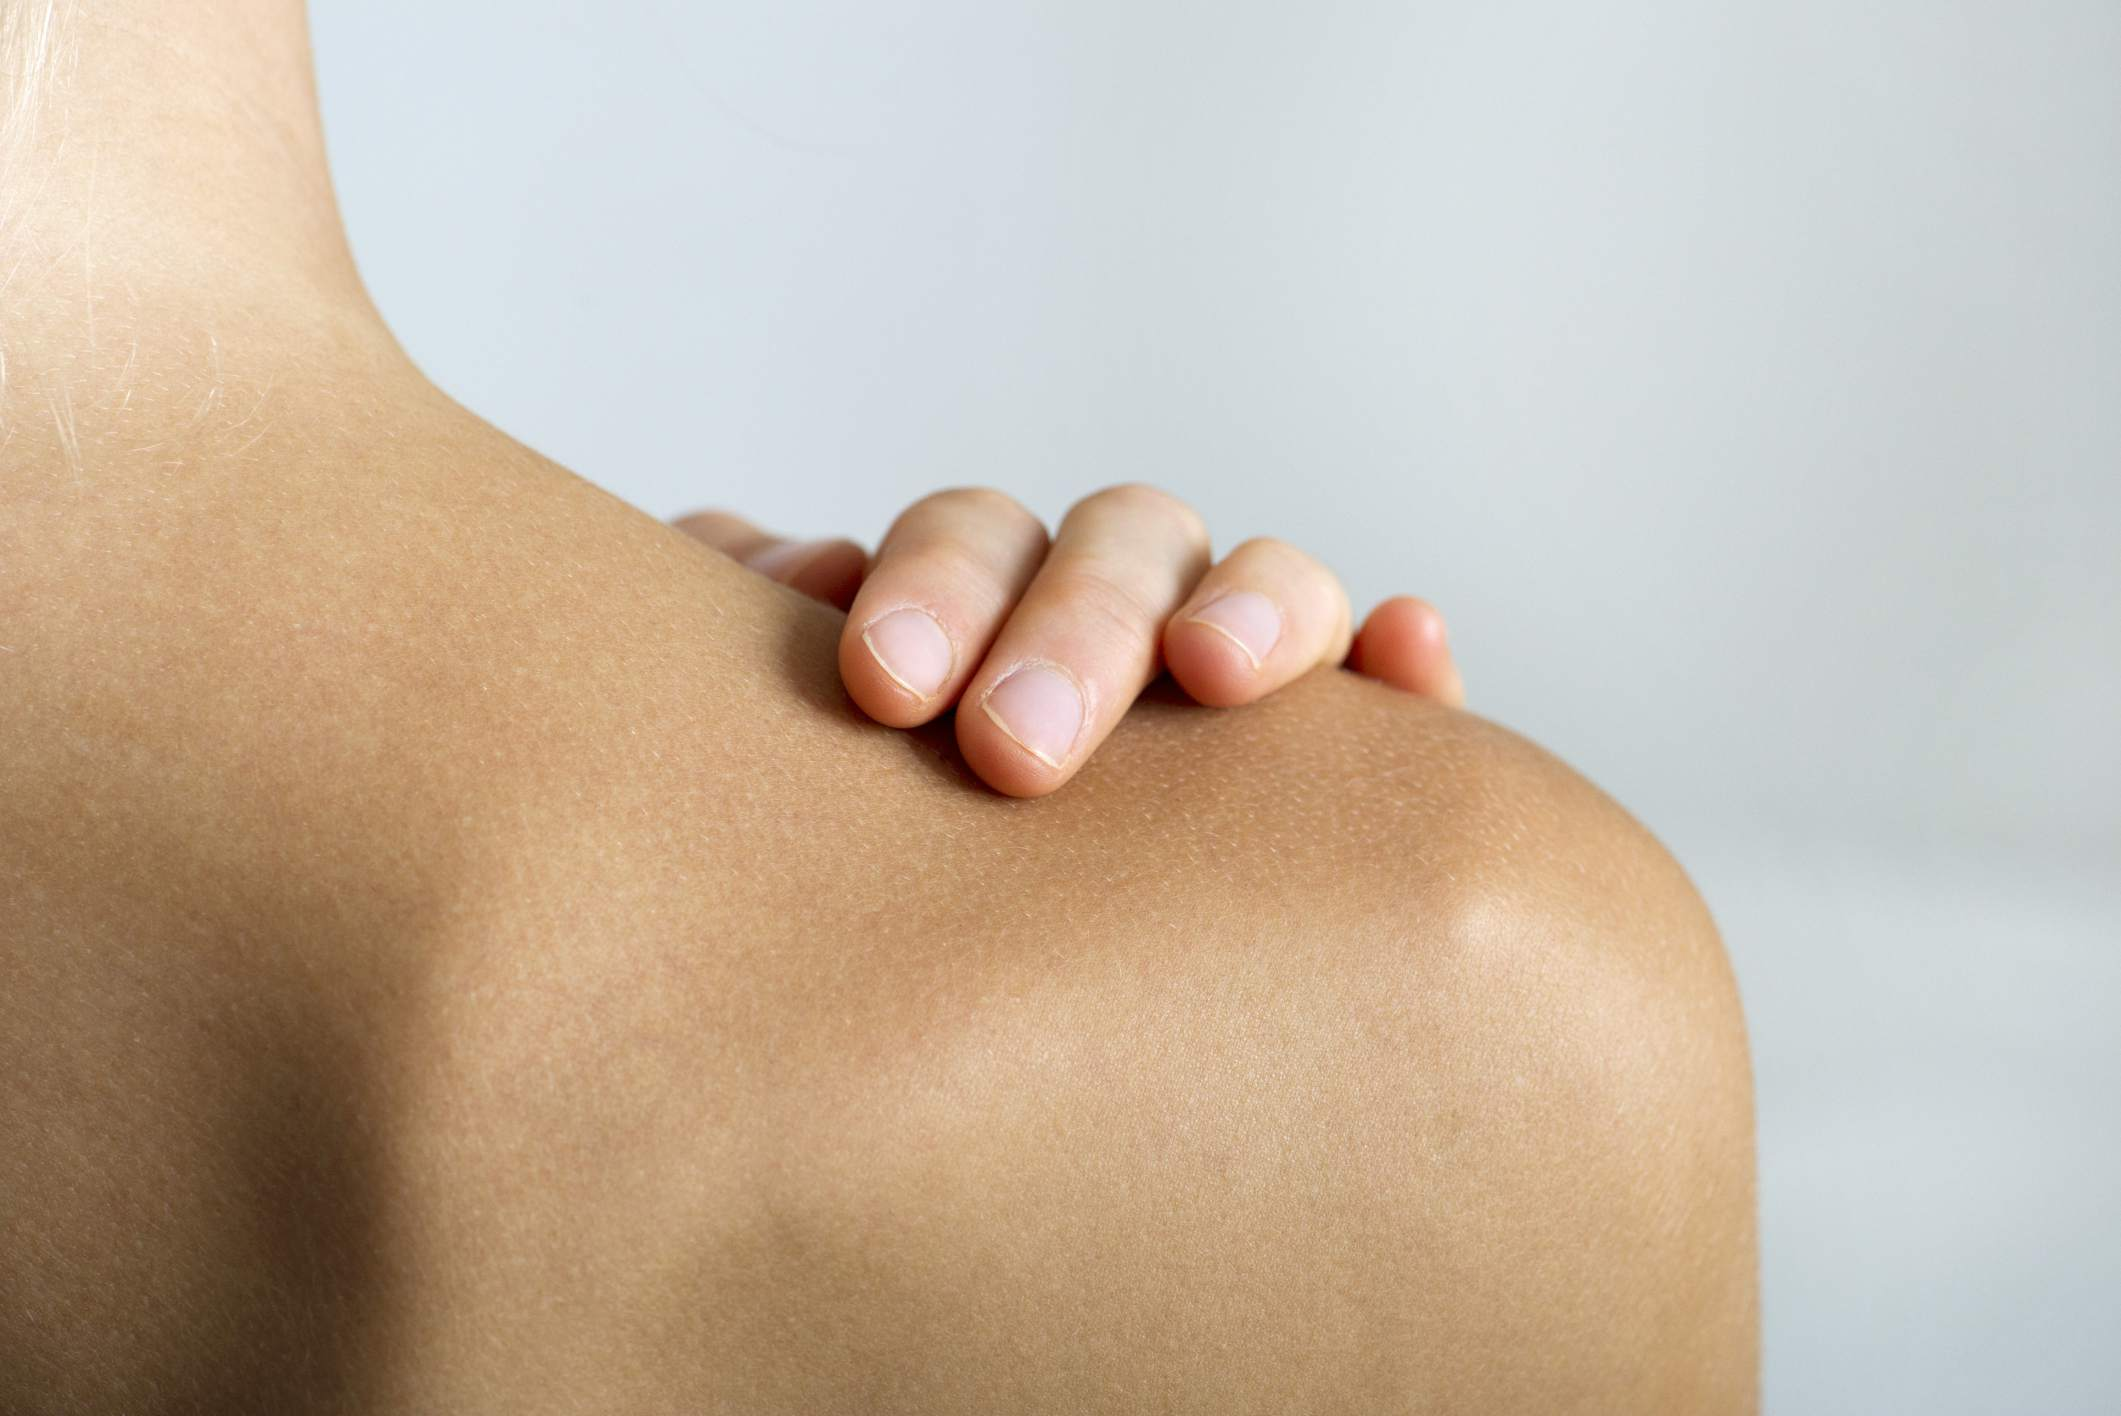 How To Prevent Or Minimize Surgery Scars